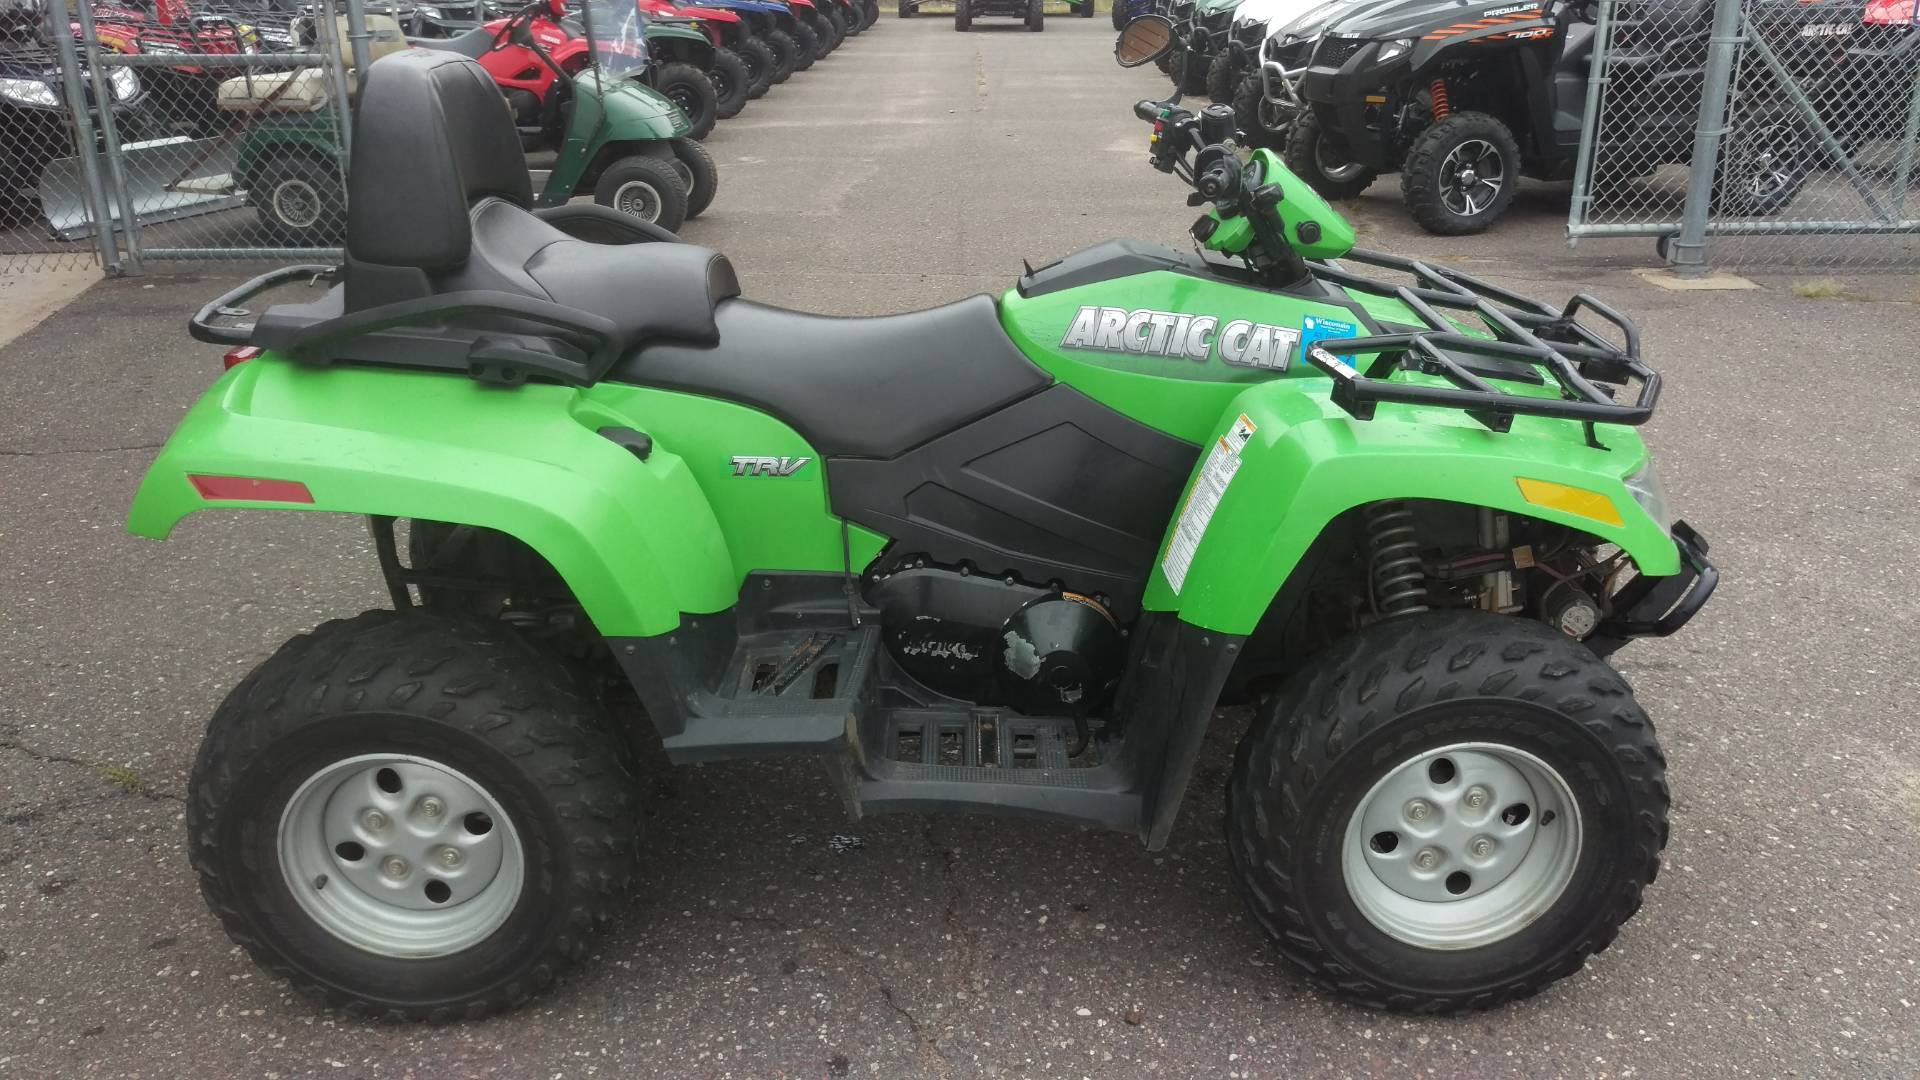 Arctic Cat Trv  For Sale